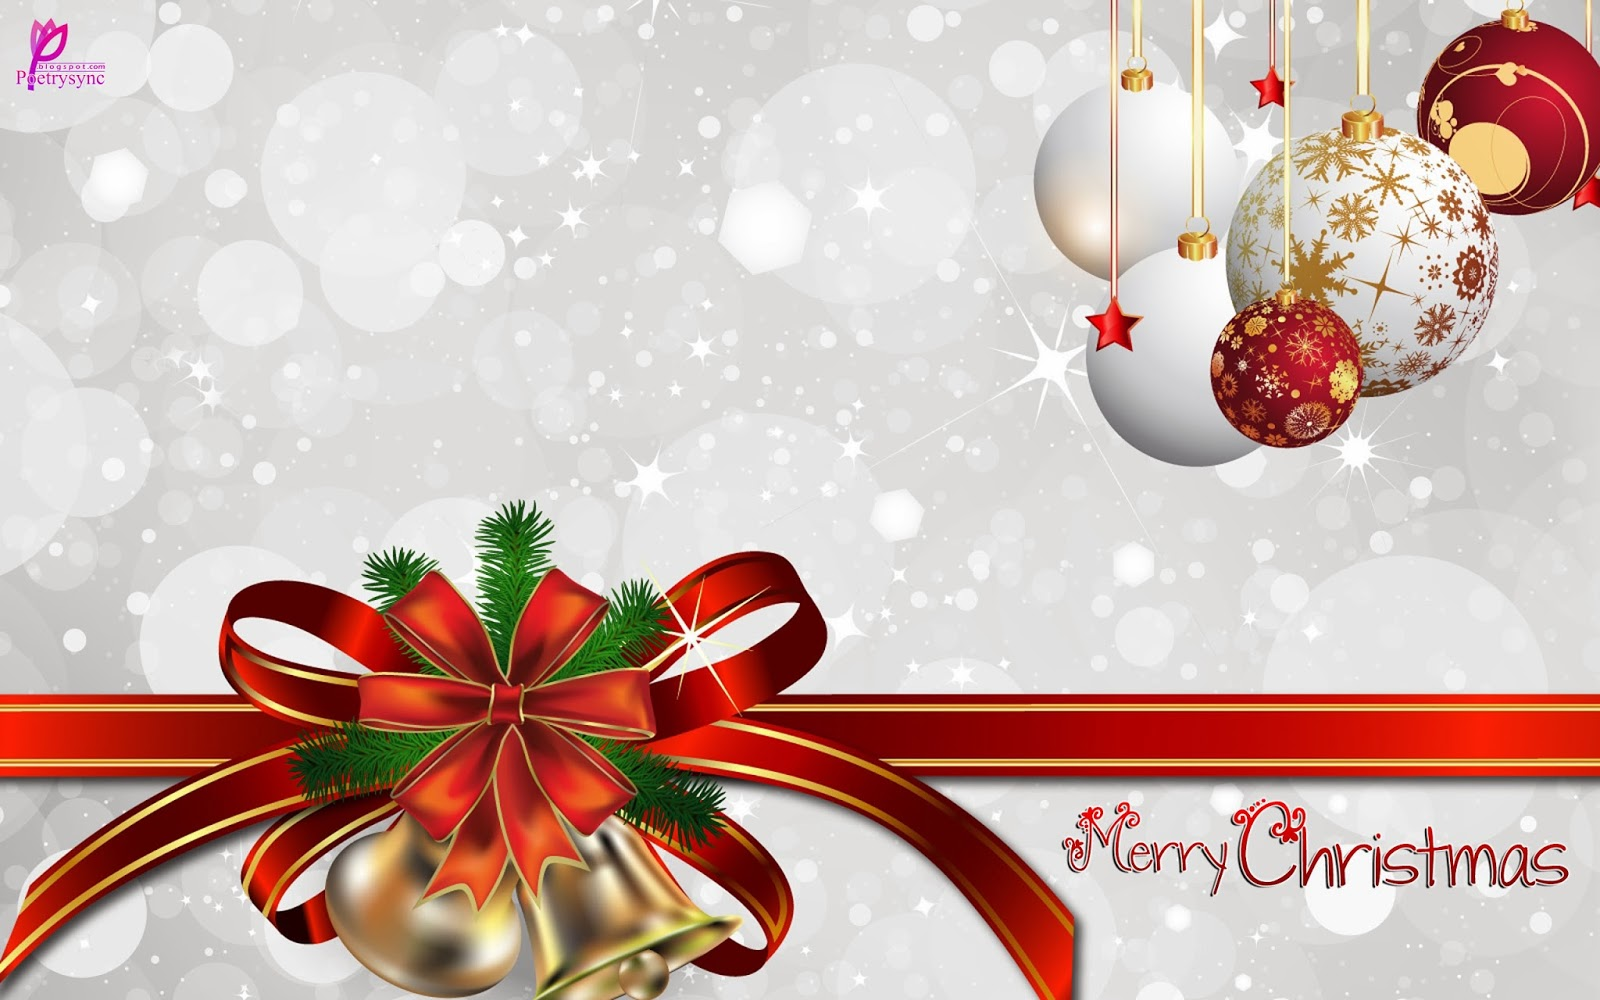 Merry christmas background wallpaper   SF Wallpaper 1600x1000